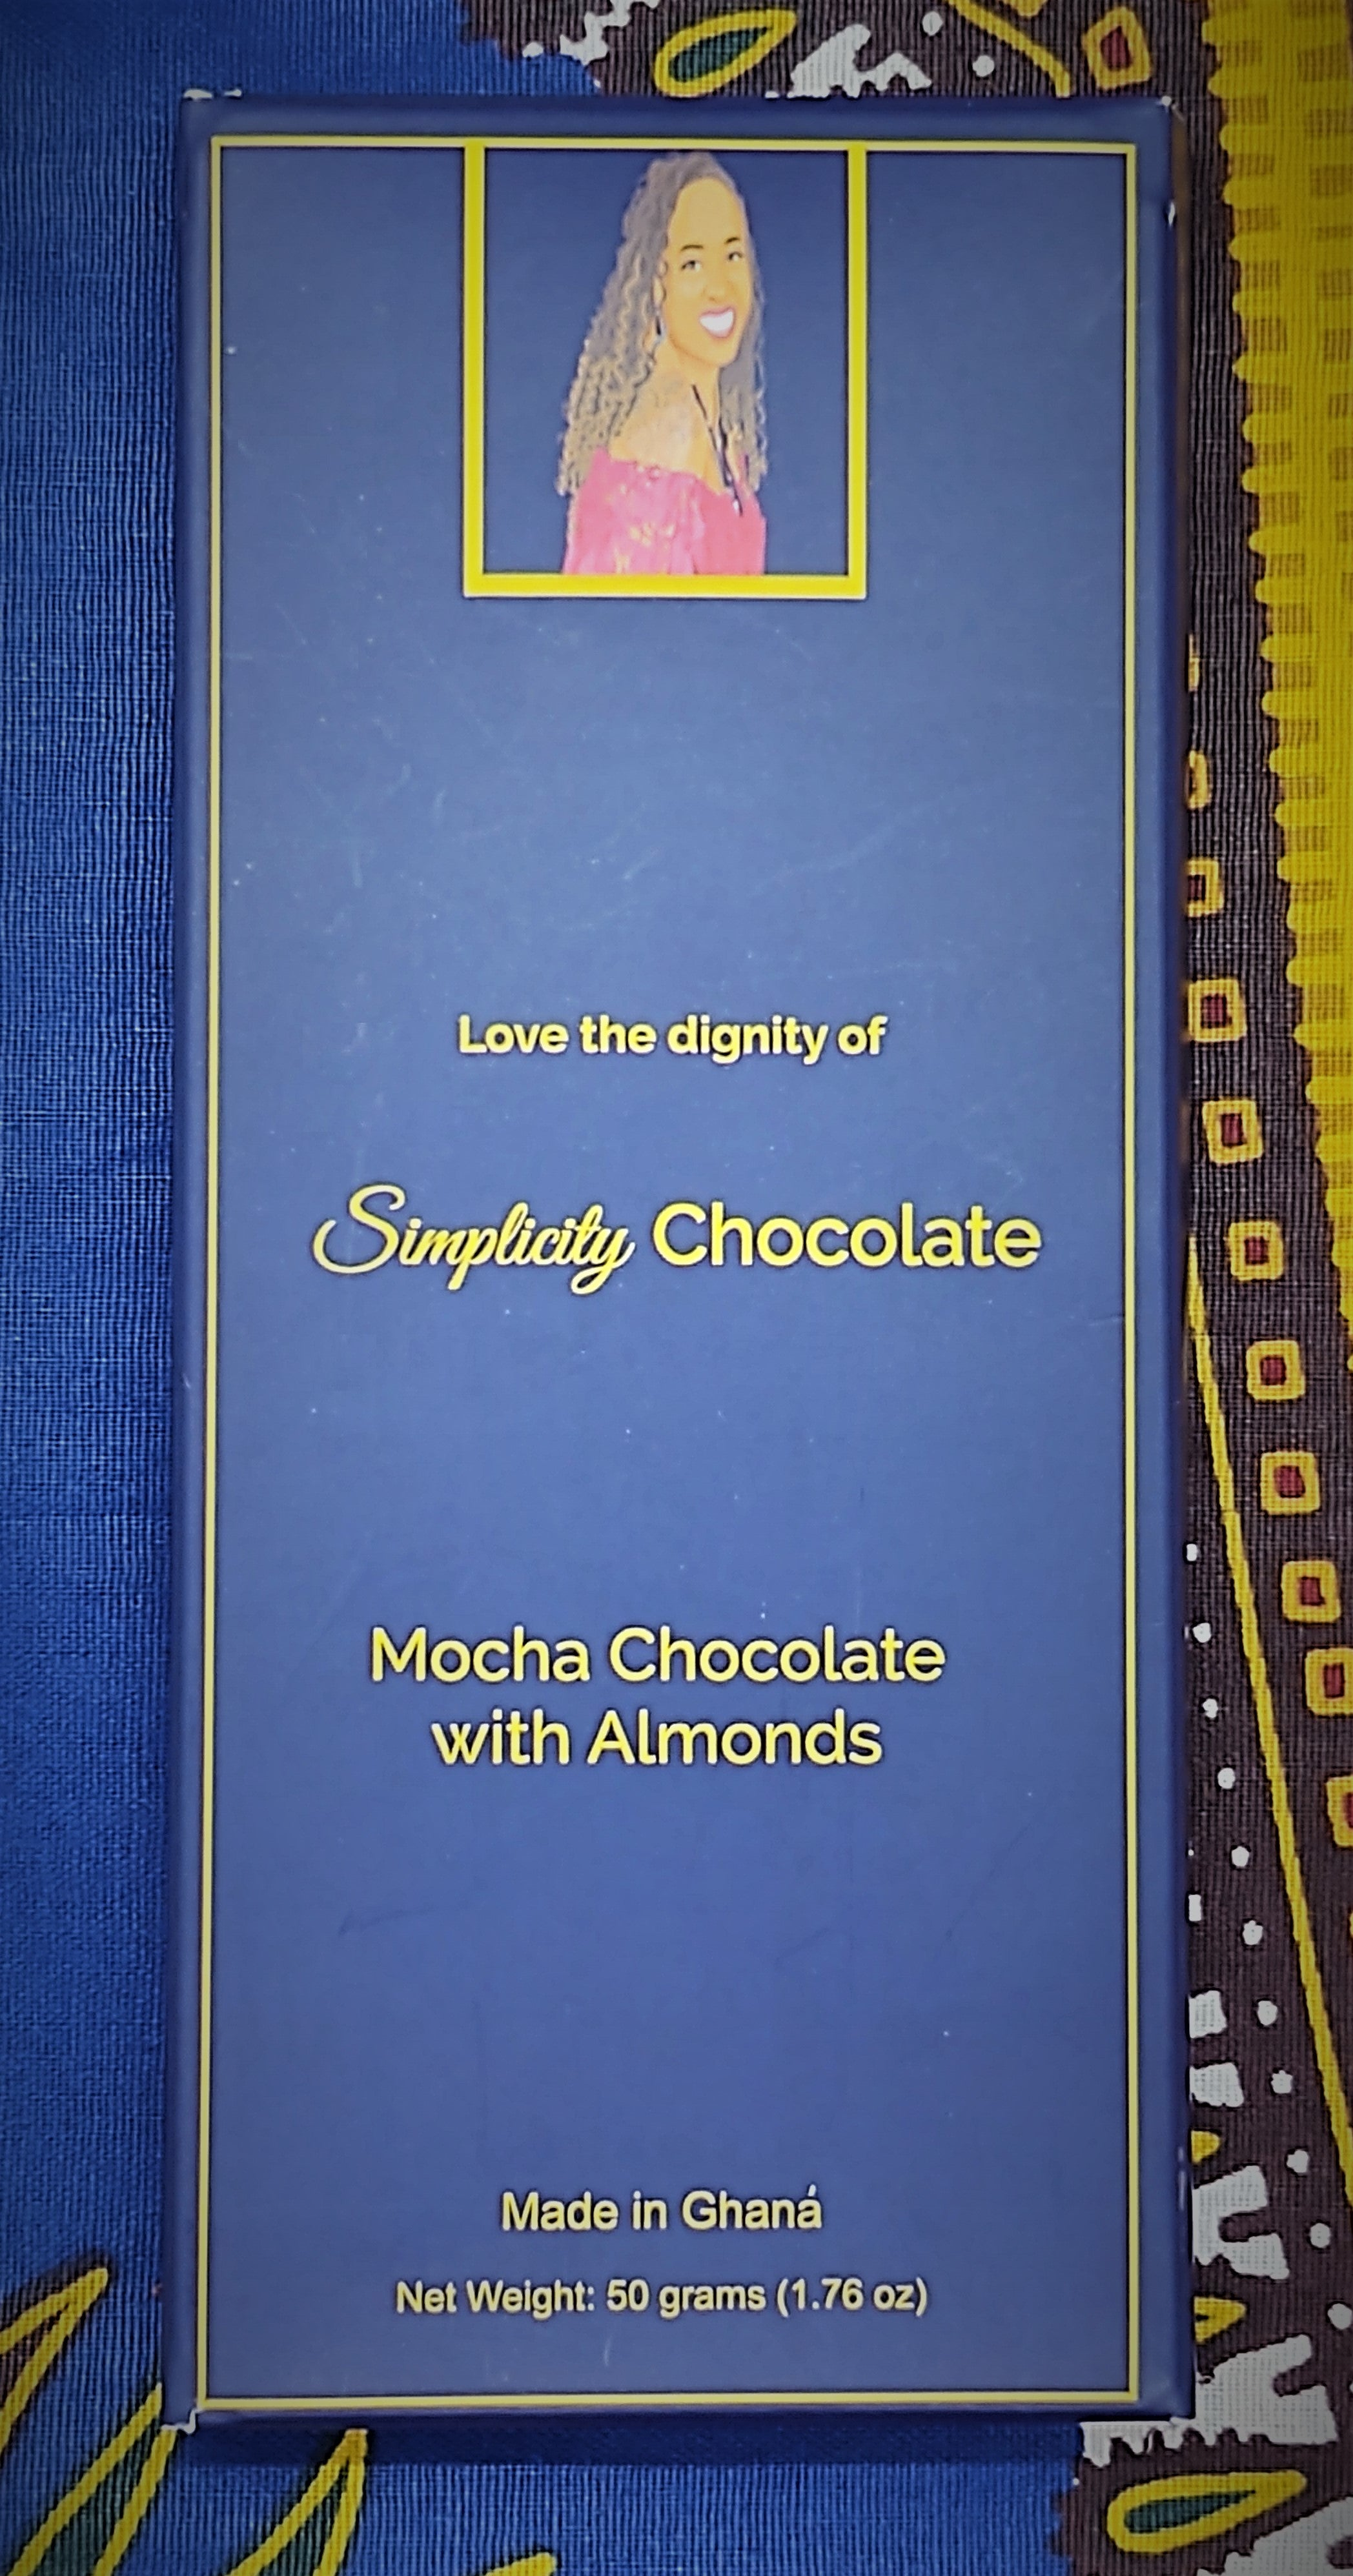 "Pictured: The Simplicity Chocolate bar wrapped in complete packaging which consists of a dark blue box with gold writing. A portrait of the CEO is centered at the top of the packaging. The CEO is seated, looking over her right shoulder, wearing a magenta, off the shoulder top and a royal blue gemstone necklace with matching earrings. The packaging reads, ""Love the dignity of Simplicity Chocolate"" in the center of the package. Mocha Chocolate with Almonds. Made in Ghana. Net Weight: 50 grams (1.76 oz)."